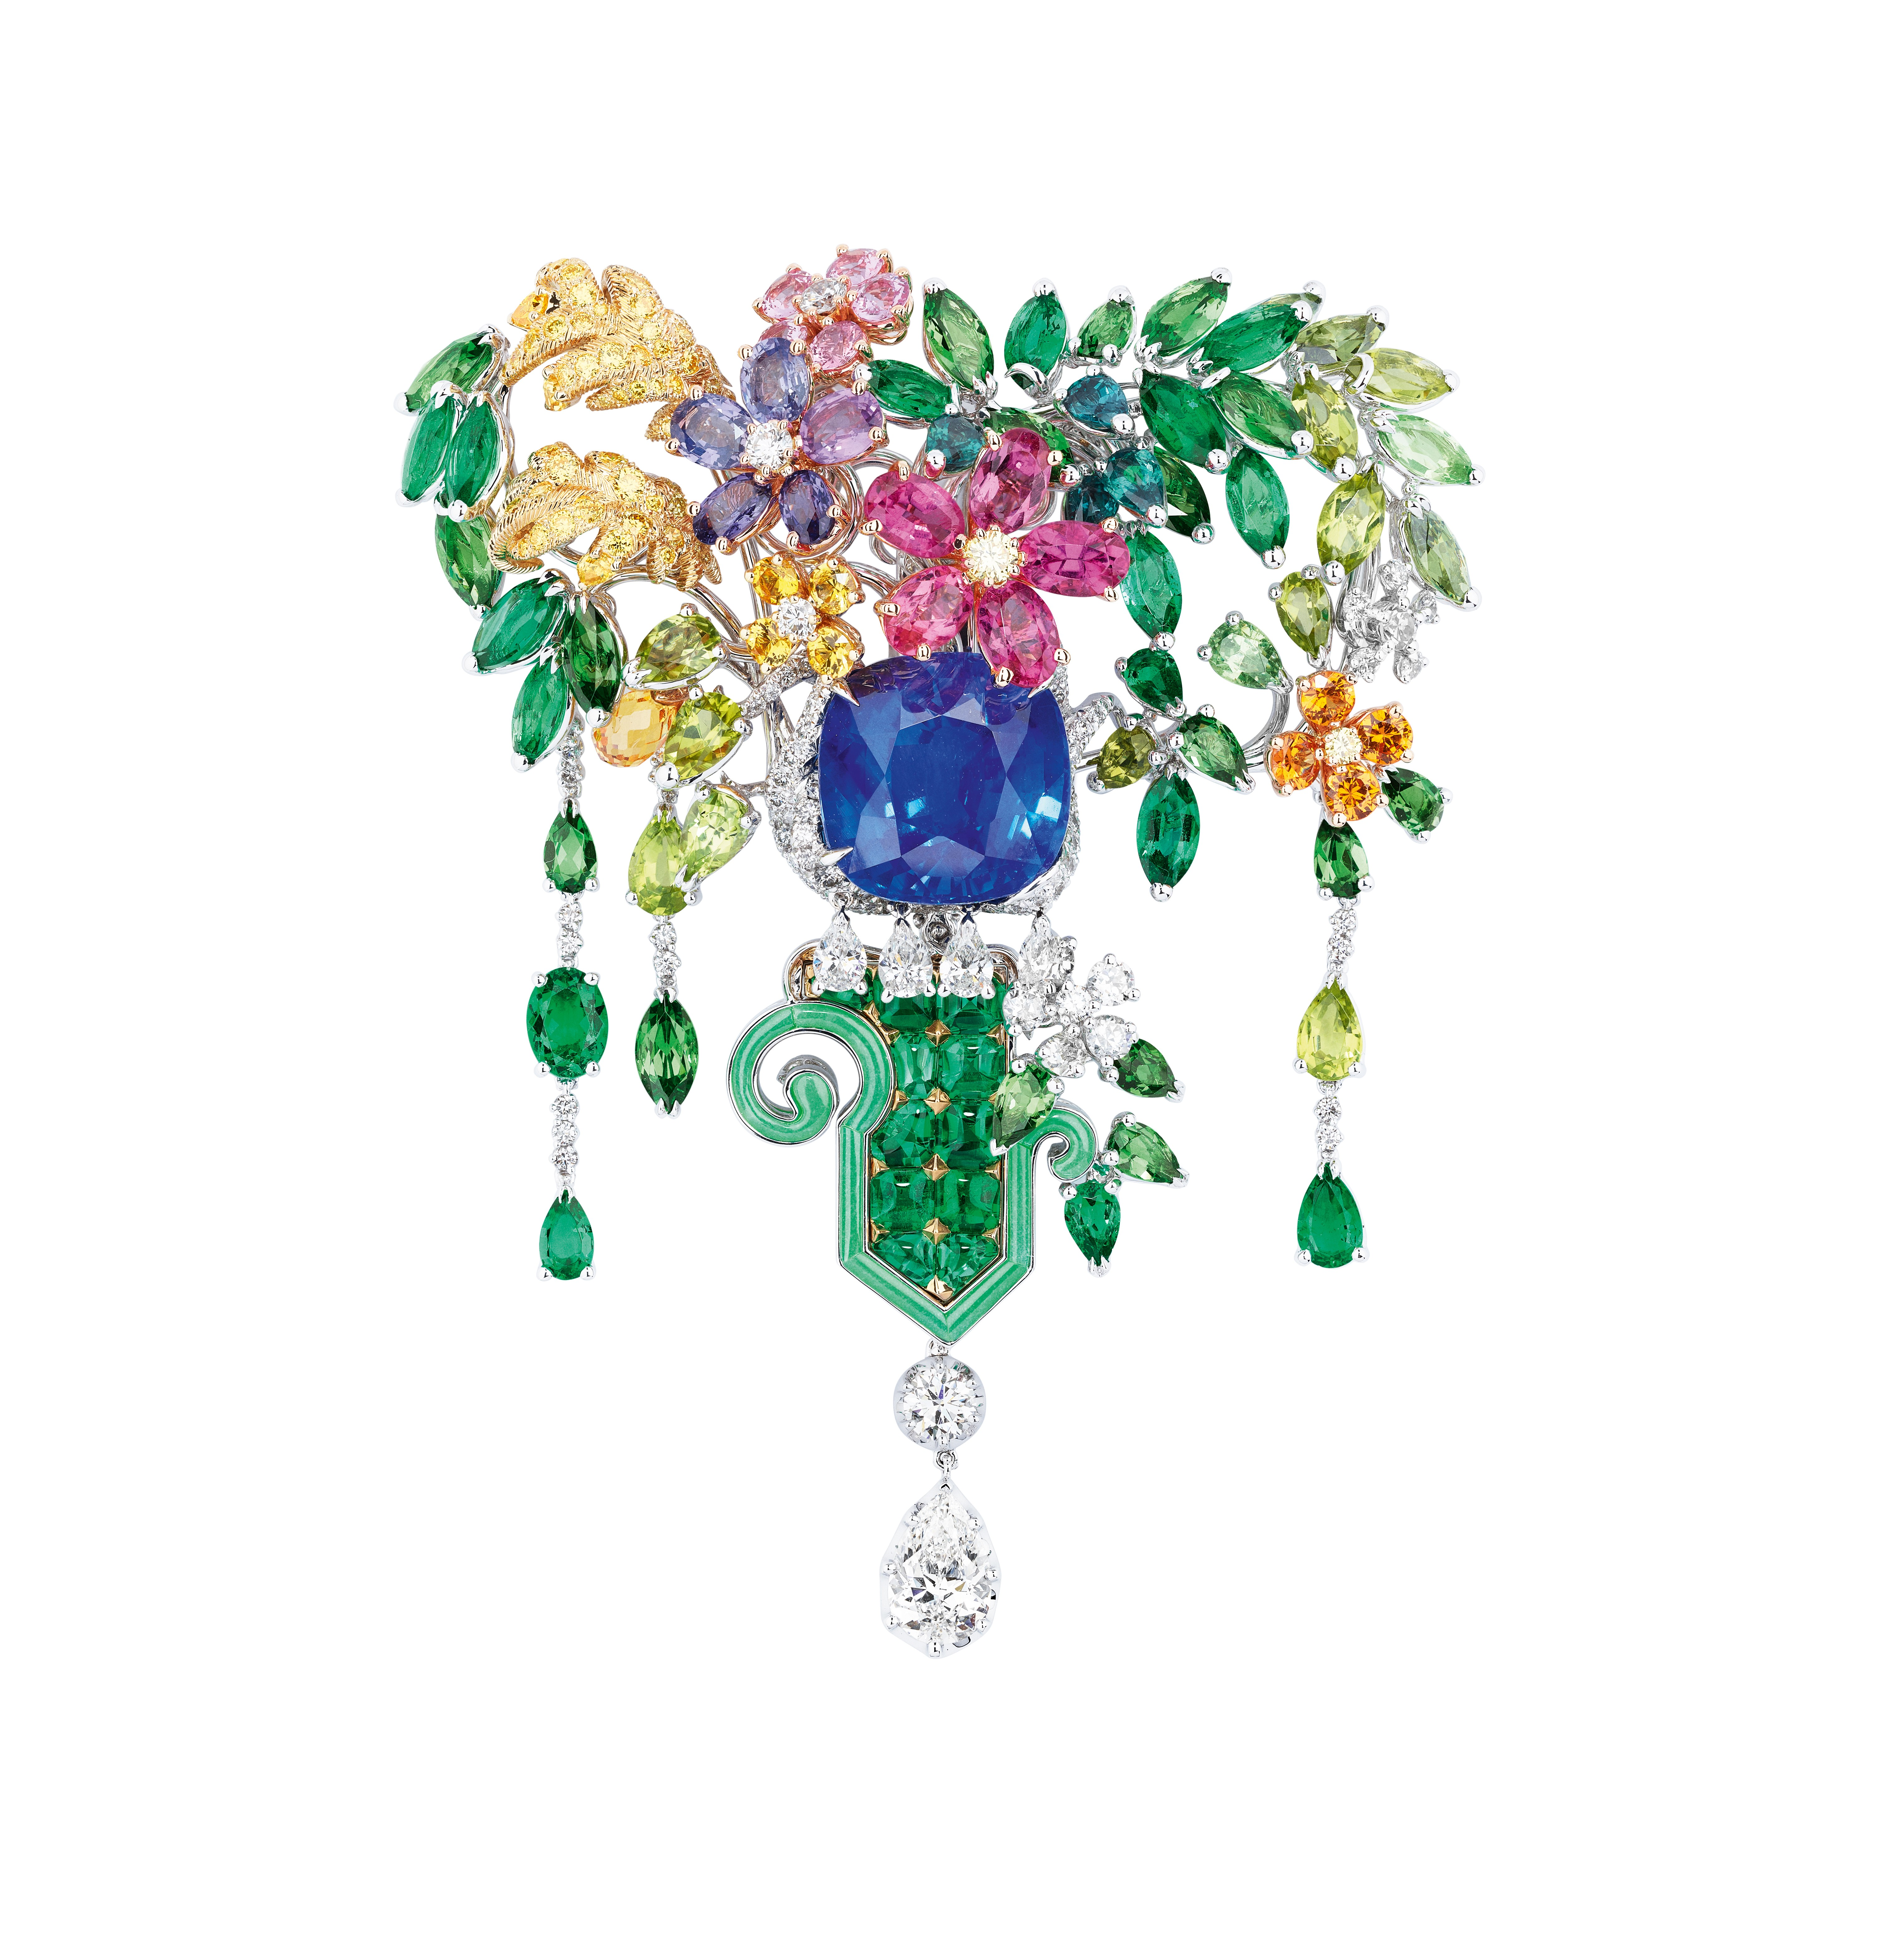 2a1fc320ffa2e Flower power finds expression in high jewellery pieces from Dior ...